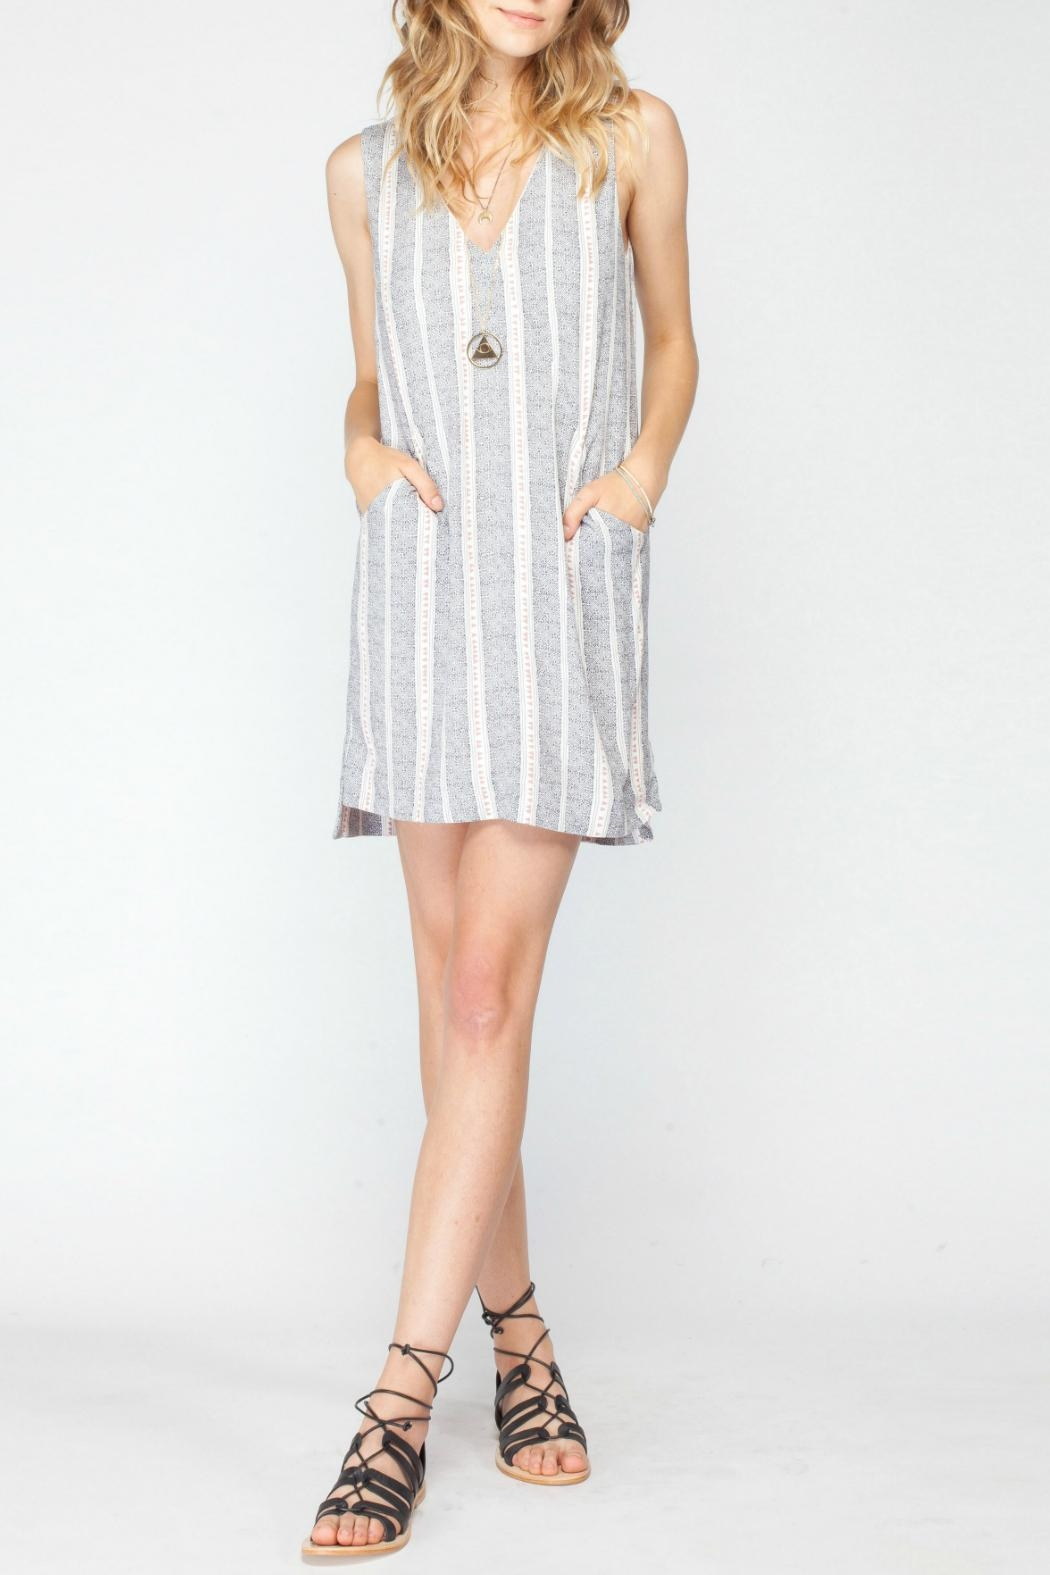 Gentle Fawn Printed Shift Dress - Front Full Image